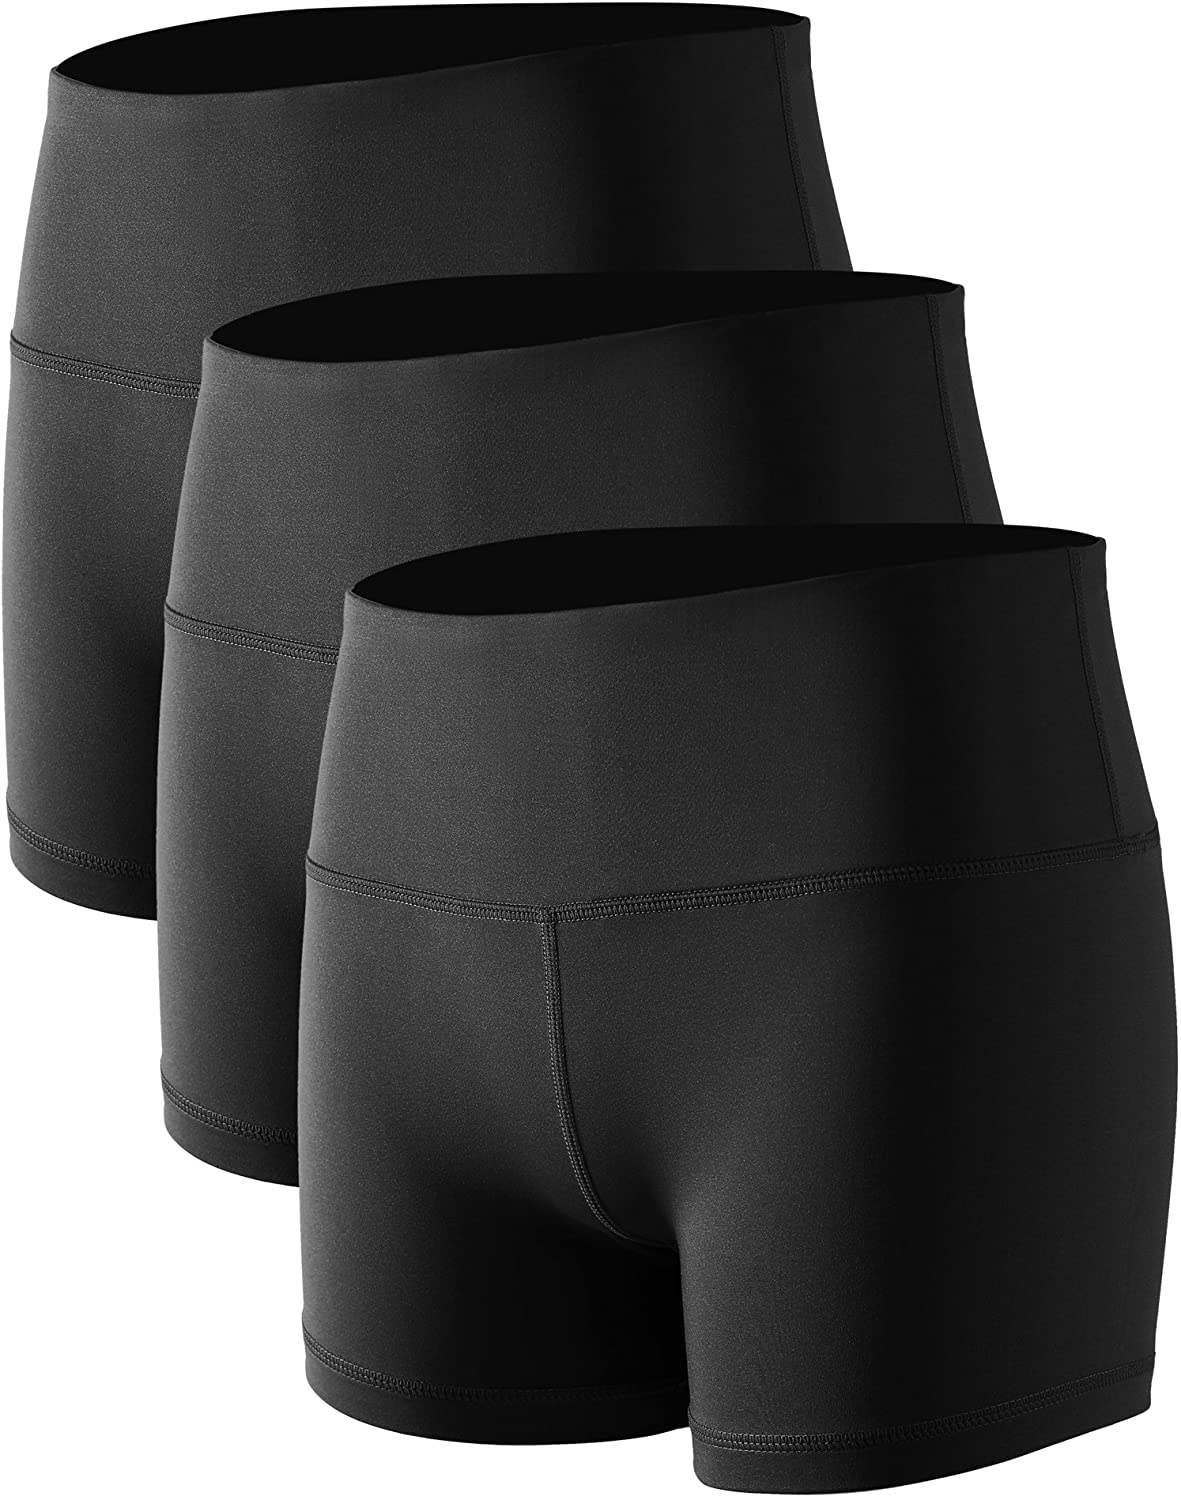 """CADMUS Women's 5"""" /2"""" High Waist Stretch Athletic Workout Shorts with Pocket : Sports & Outdoors"""